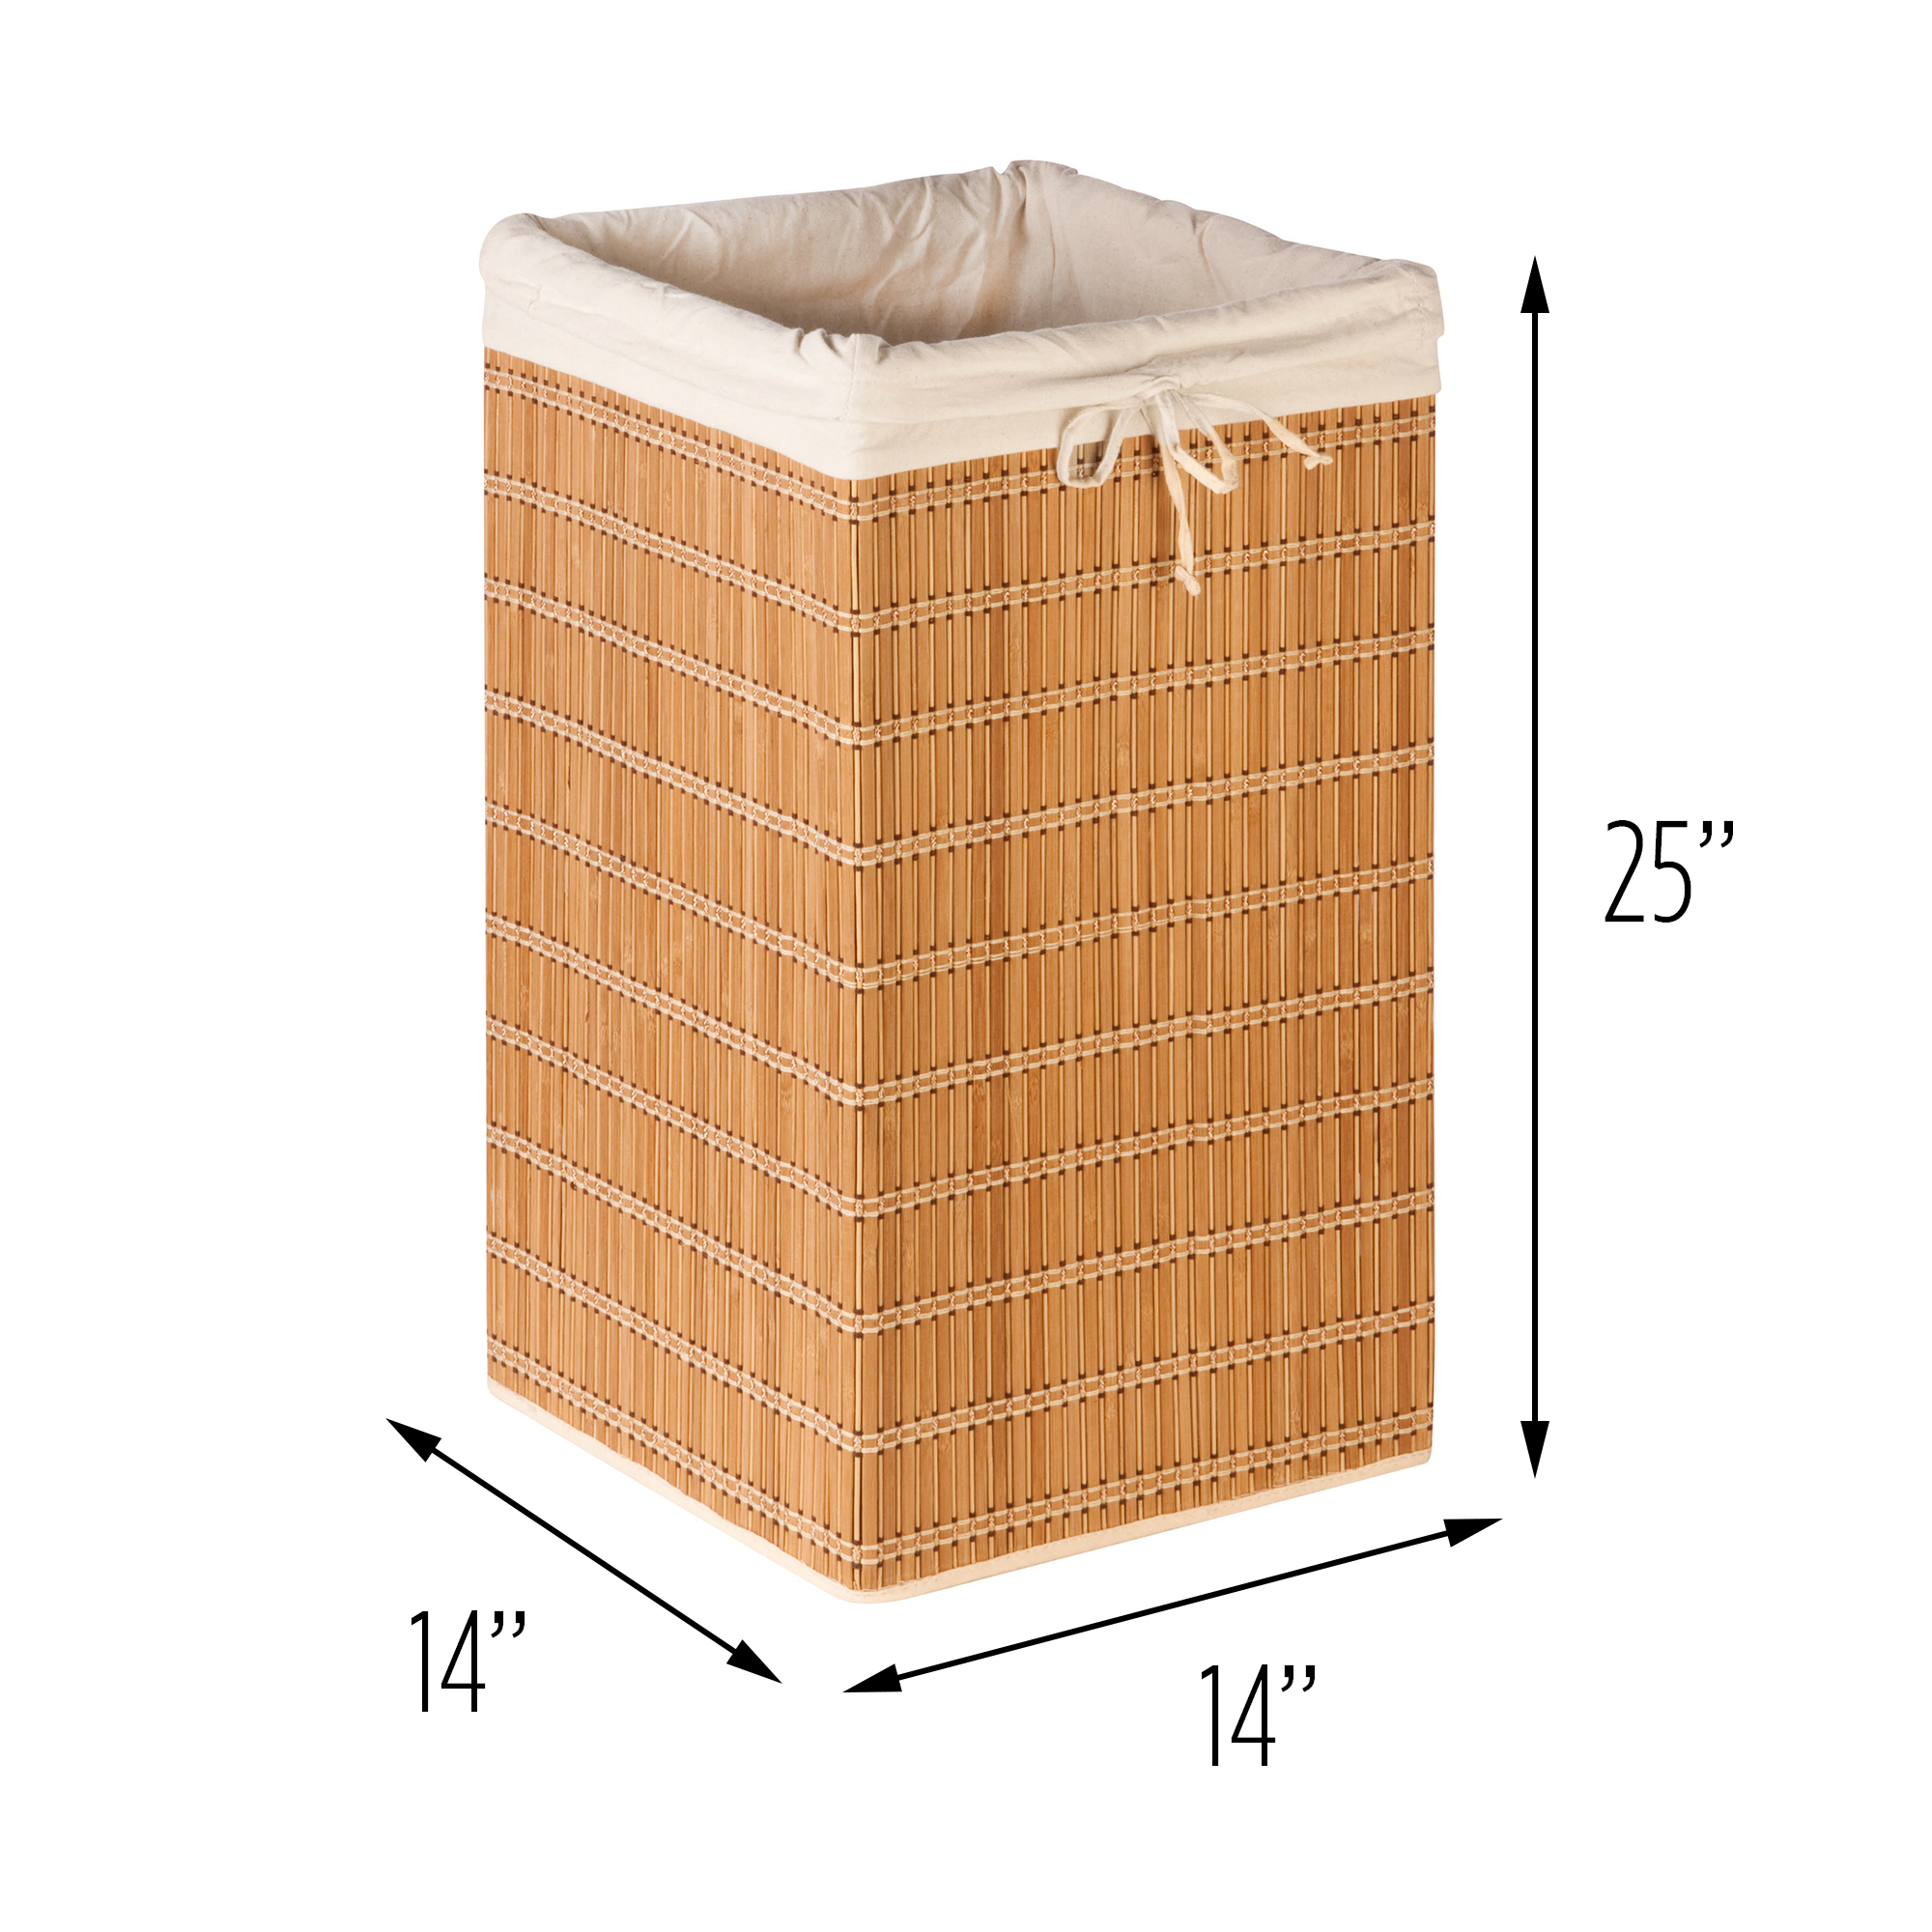 Honey-Can-Do Square Bamboo Laundry Hamper with Bag, Brown